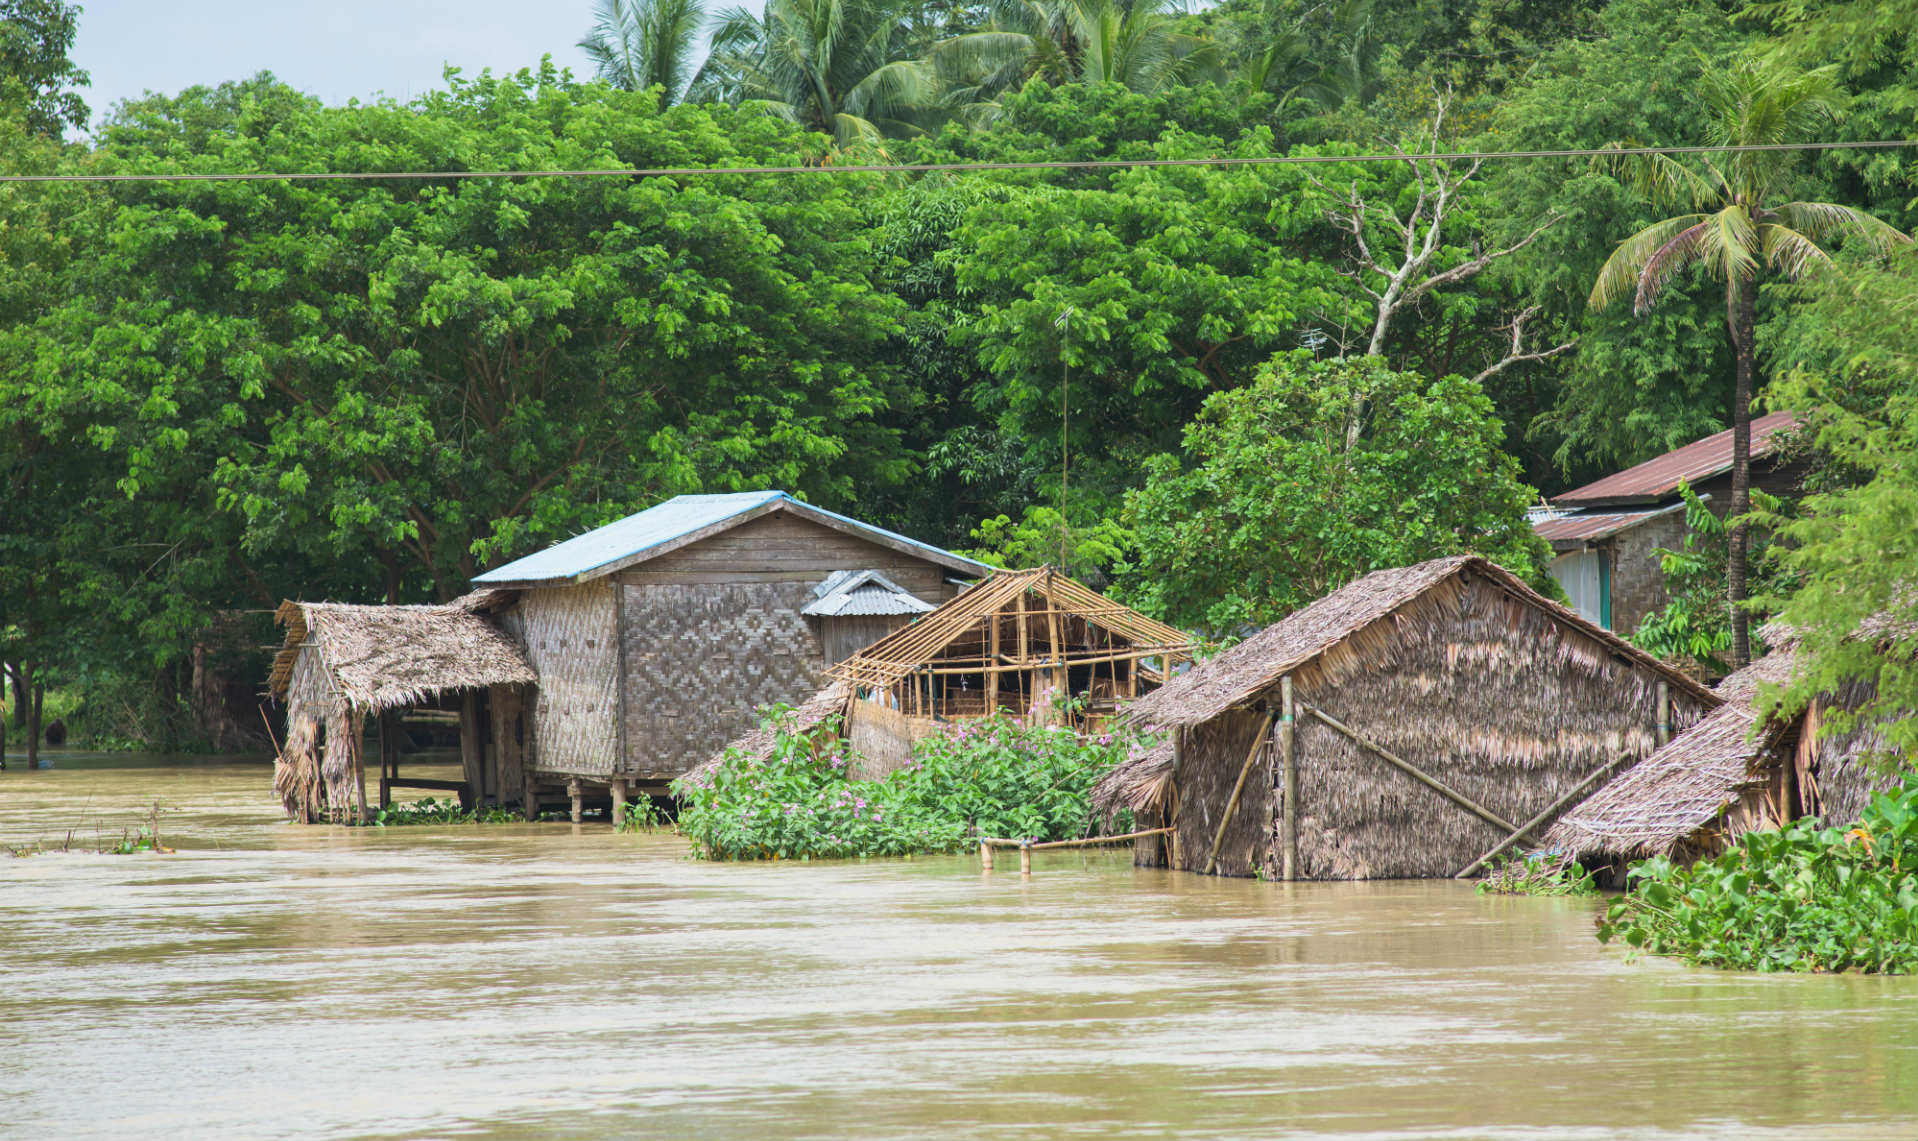 wooden made houses surrounded by flooded waters